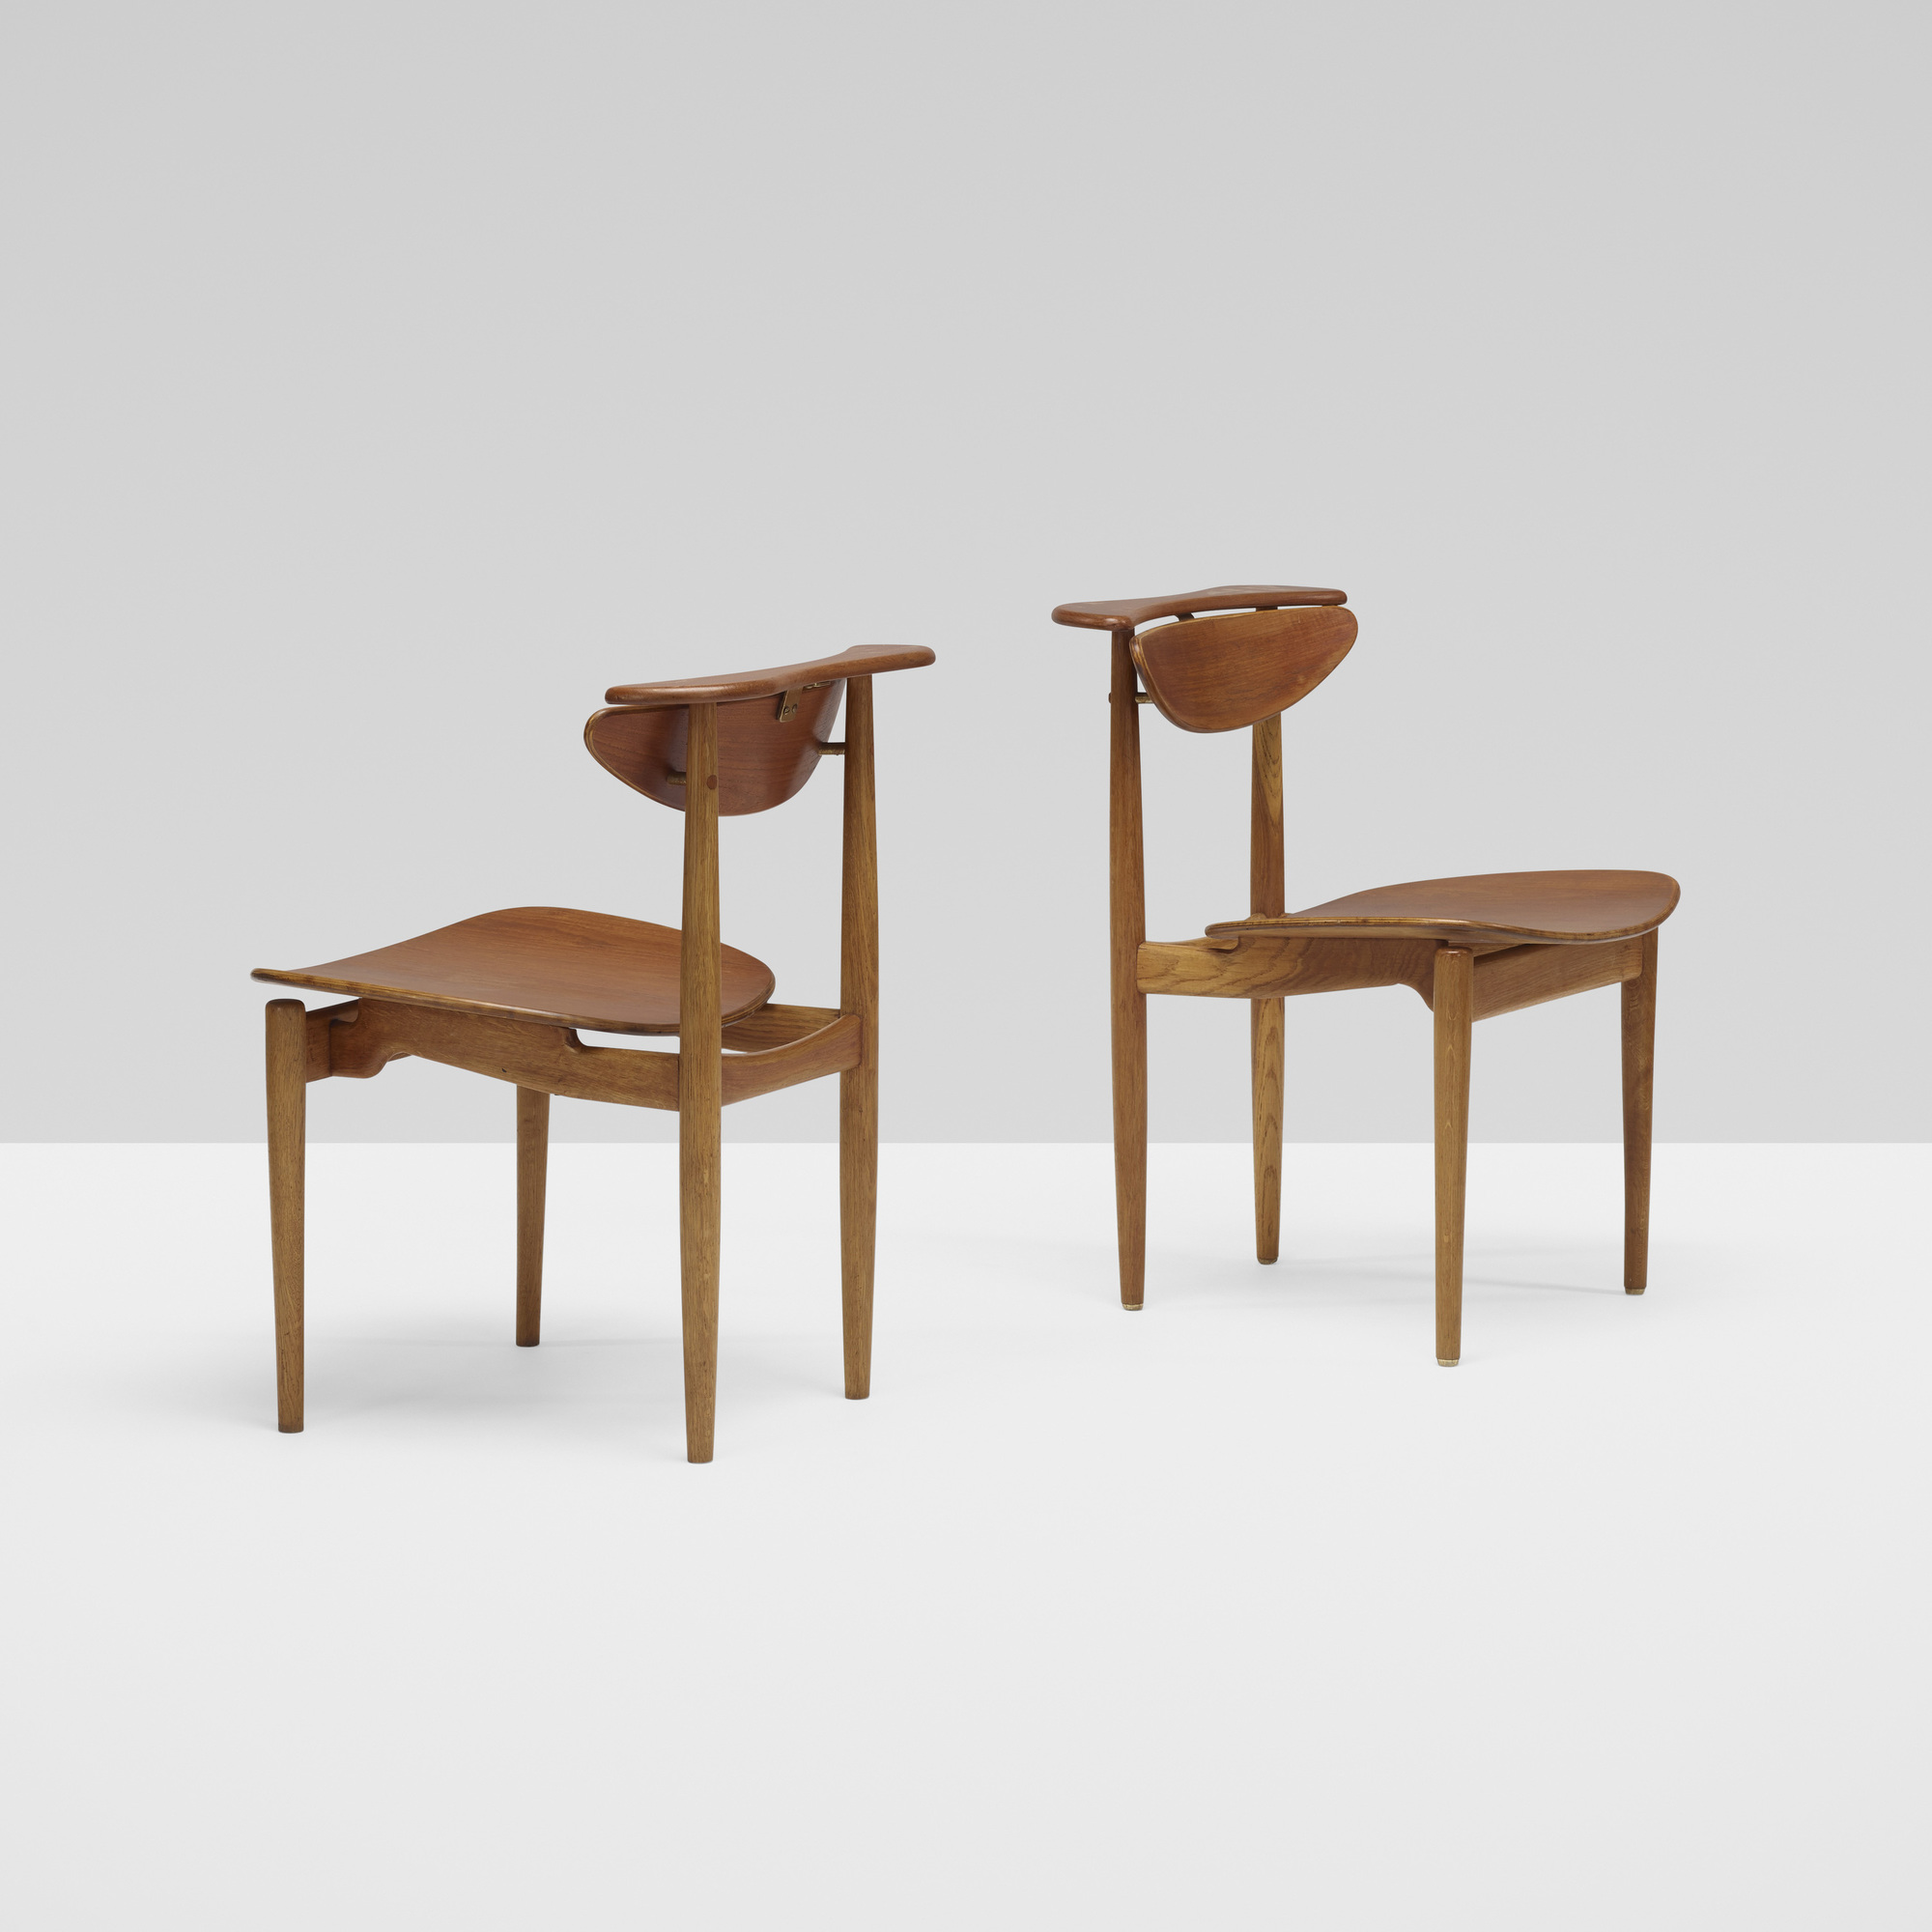 378: Finn Juhl / chairs, pair (2 of 4)